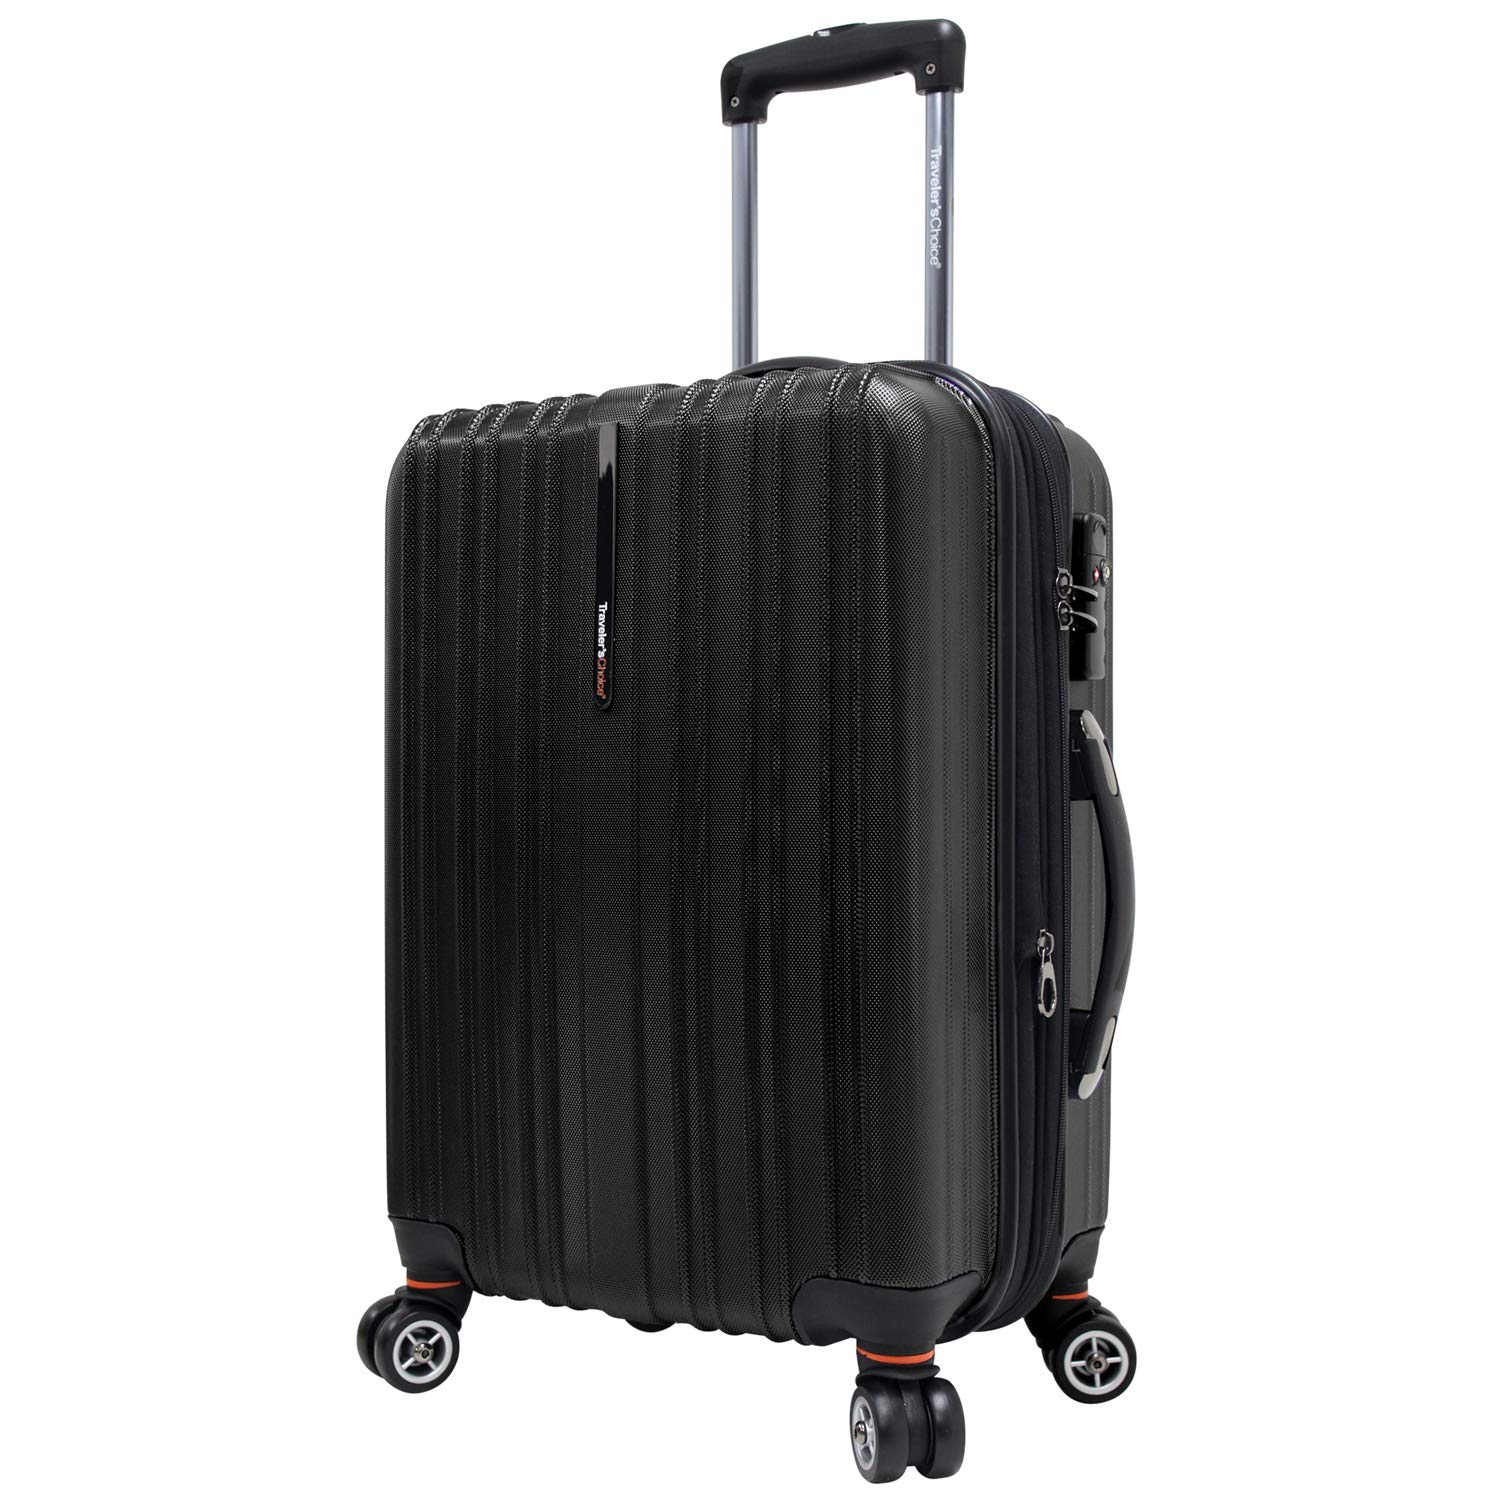 Traveler's Choice Tasmania 100% Pure Polycarbonate Expandable Spinner Luggage, Black